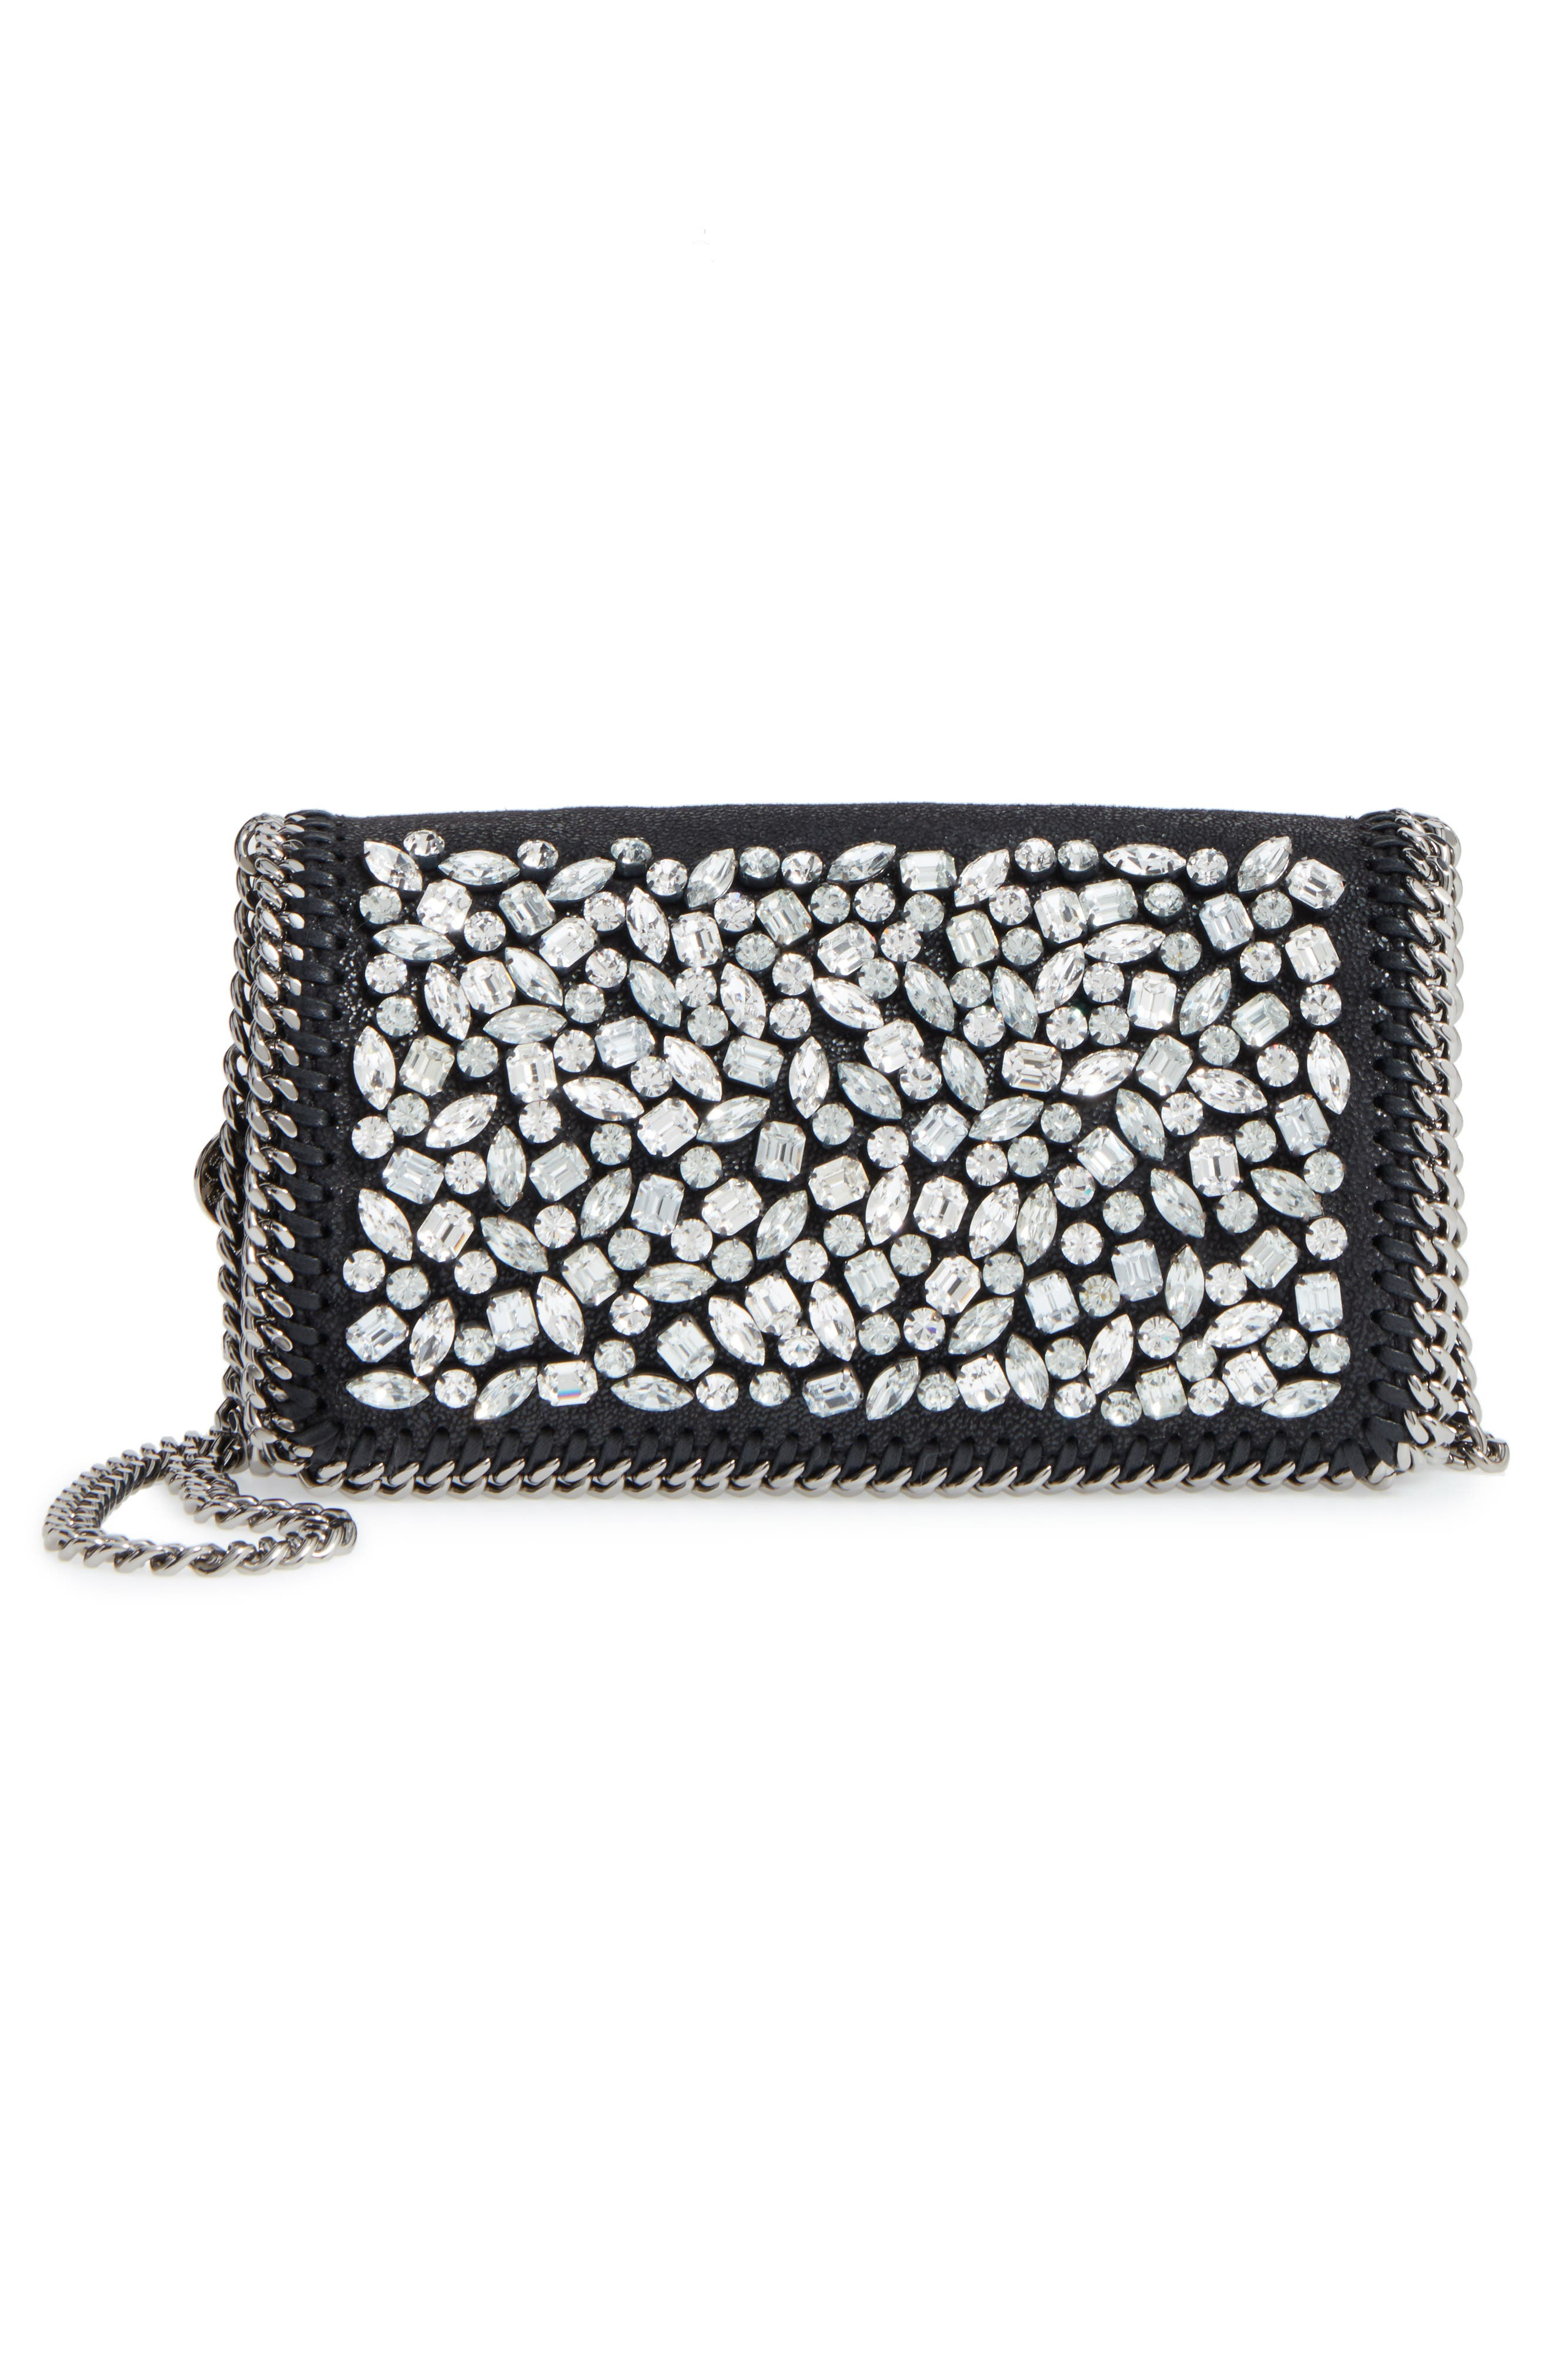 Small Fallabella Crystal Faux Leather Crossbody Bag,                             Alternate thumbnail 3, color,                             008